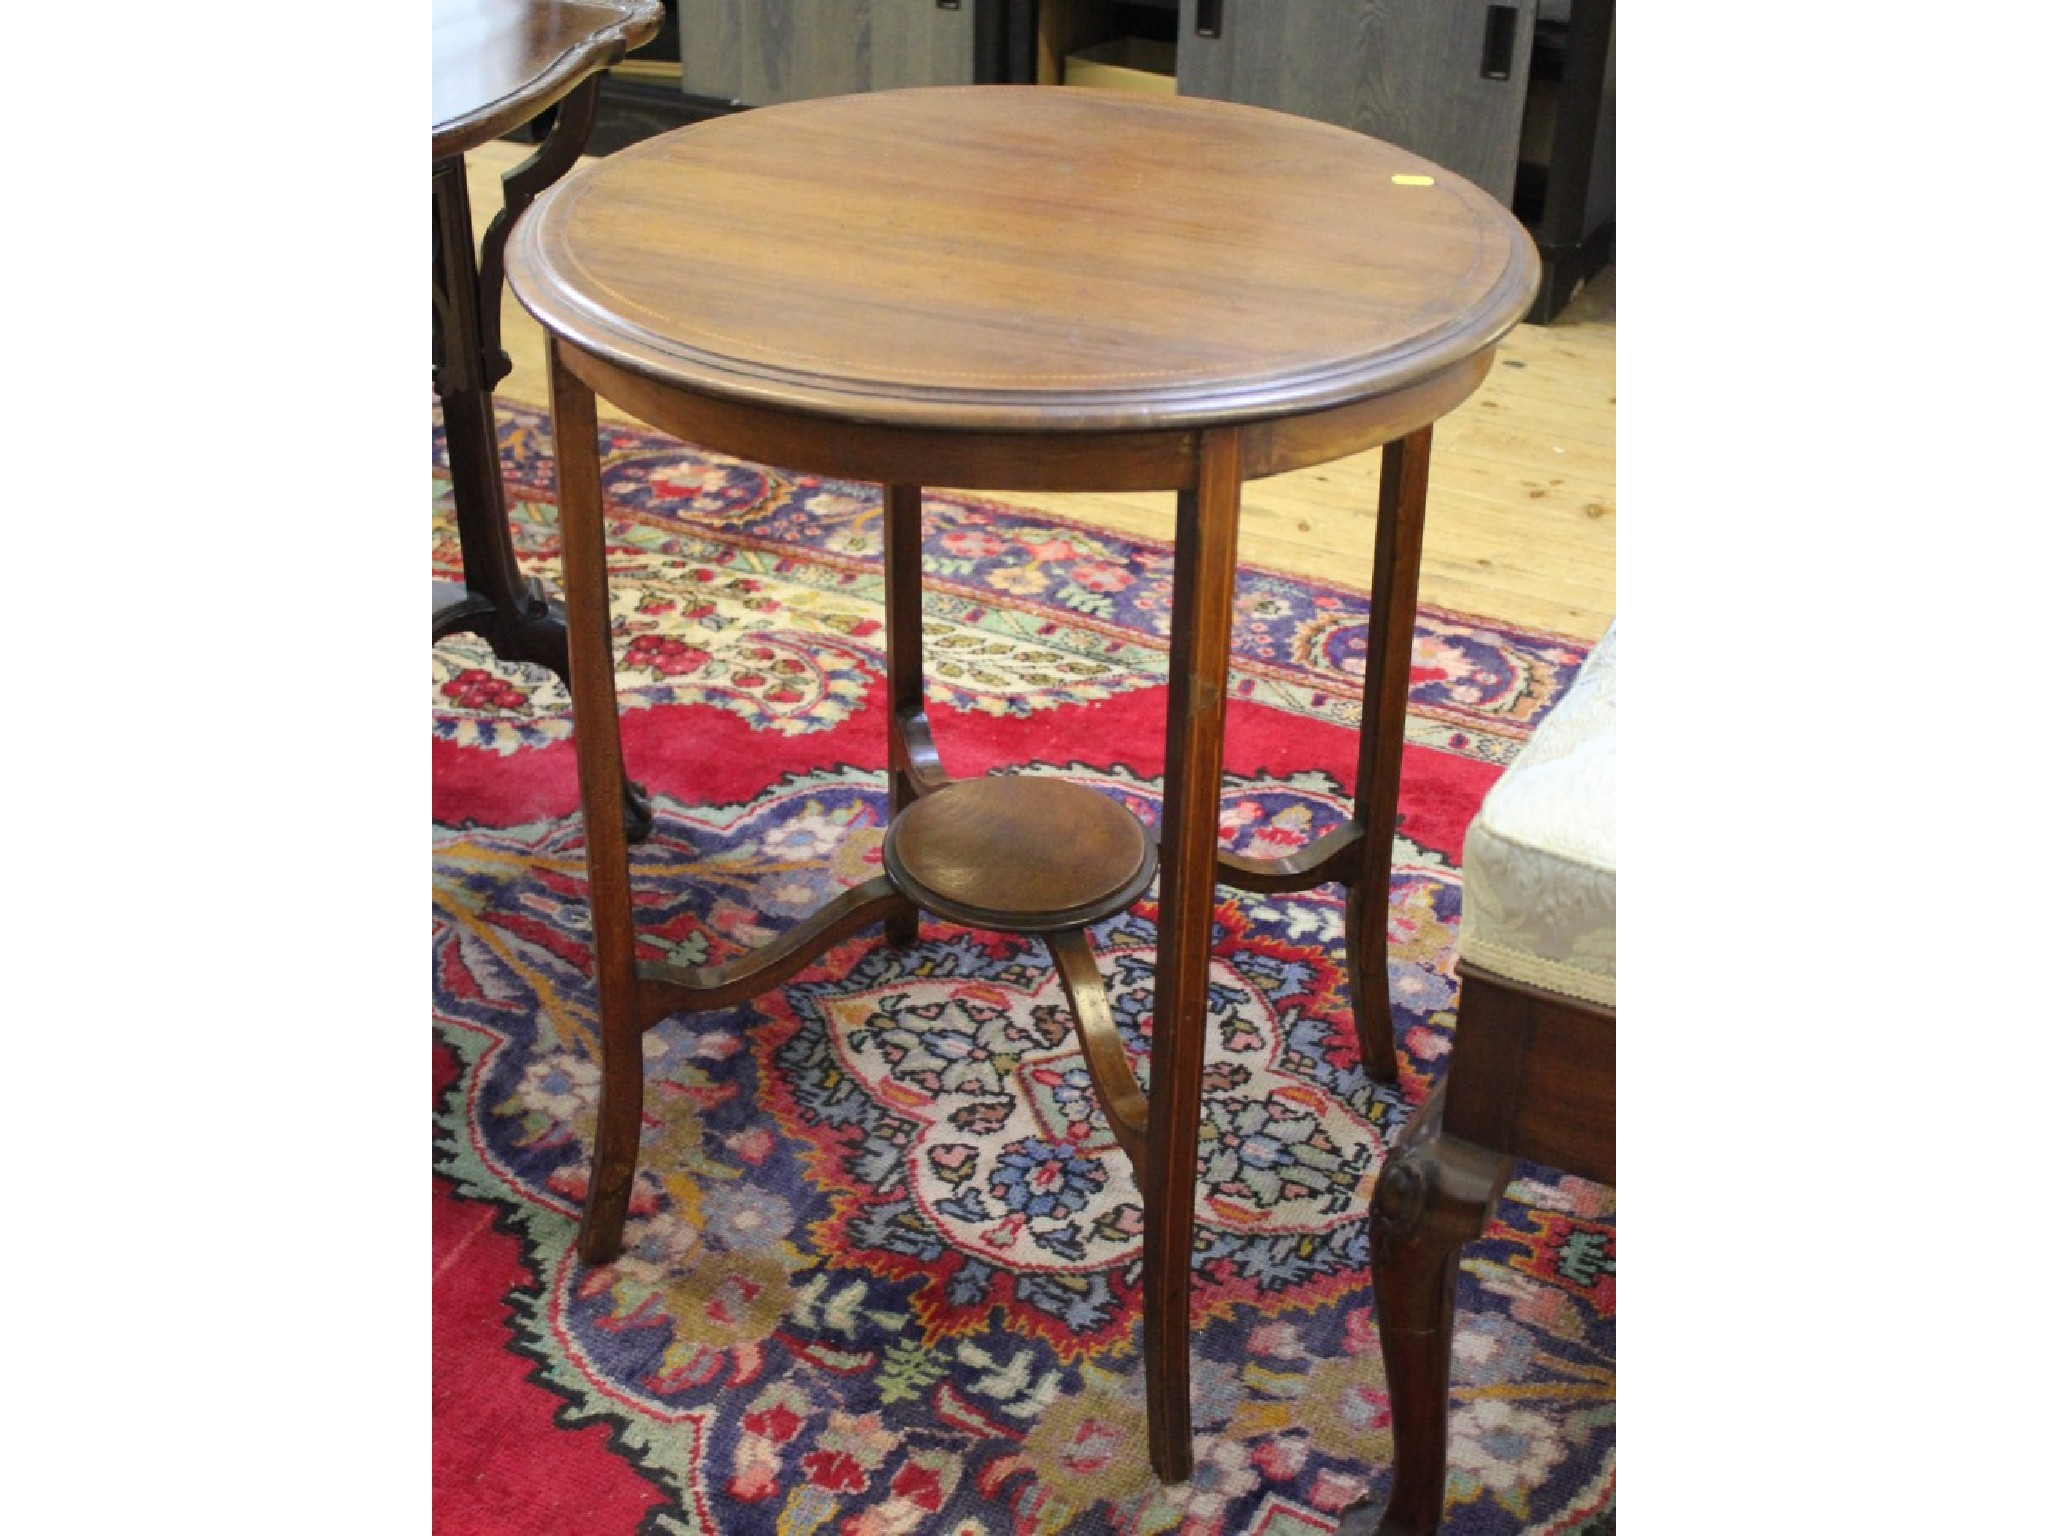 An Edwardian mahogany circular occasional table with chevron banded top, outsplayed legs and circular undertier